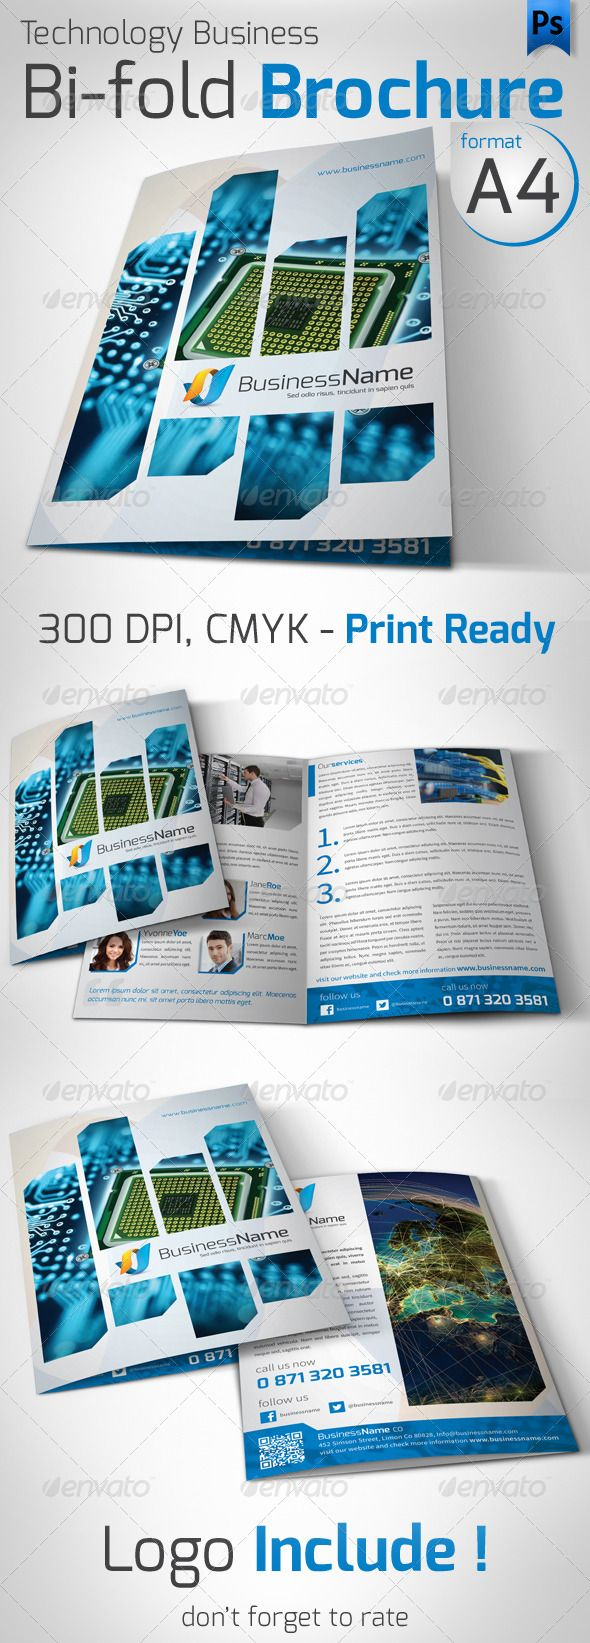 Best Bifold Brochure Templates Designs Images On Pinterest - Technology brochure template